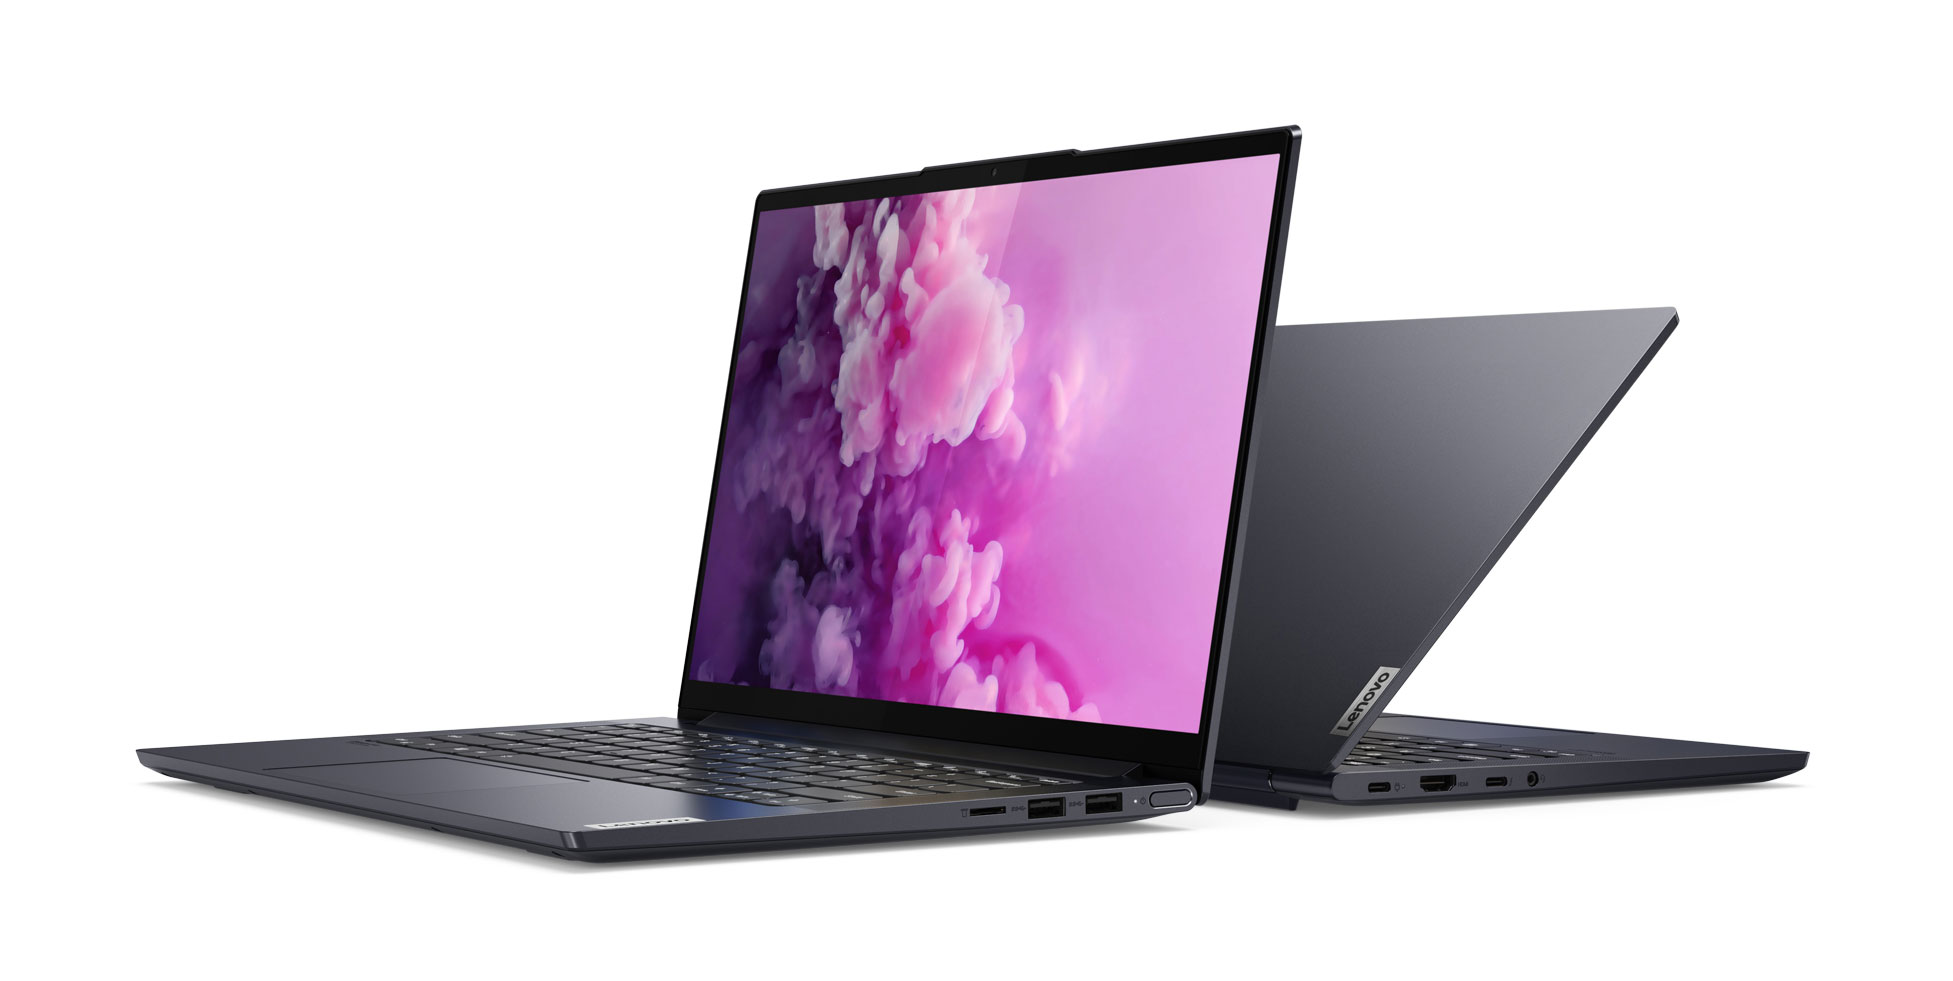 Lenovo Yoga Slim lineup of thin-and-light ultrabooks